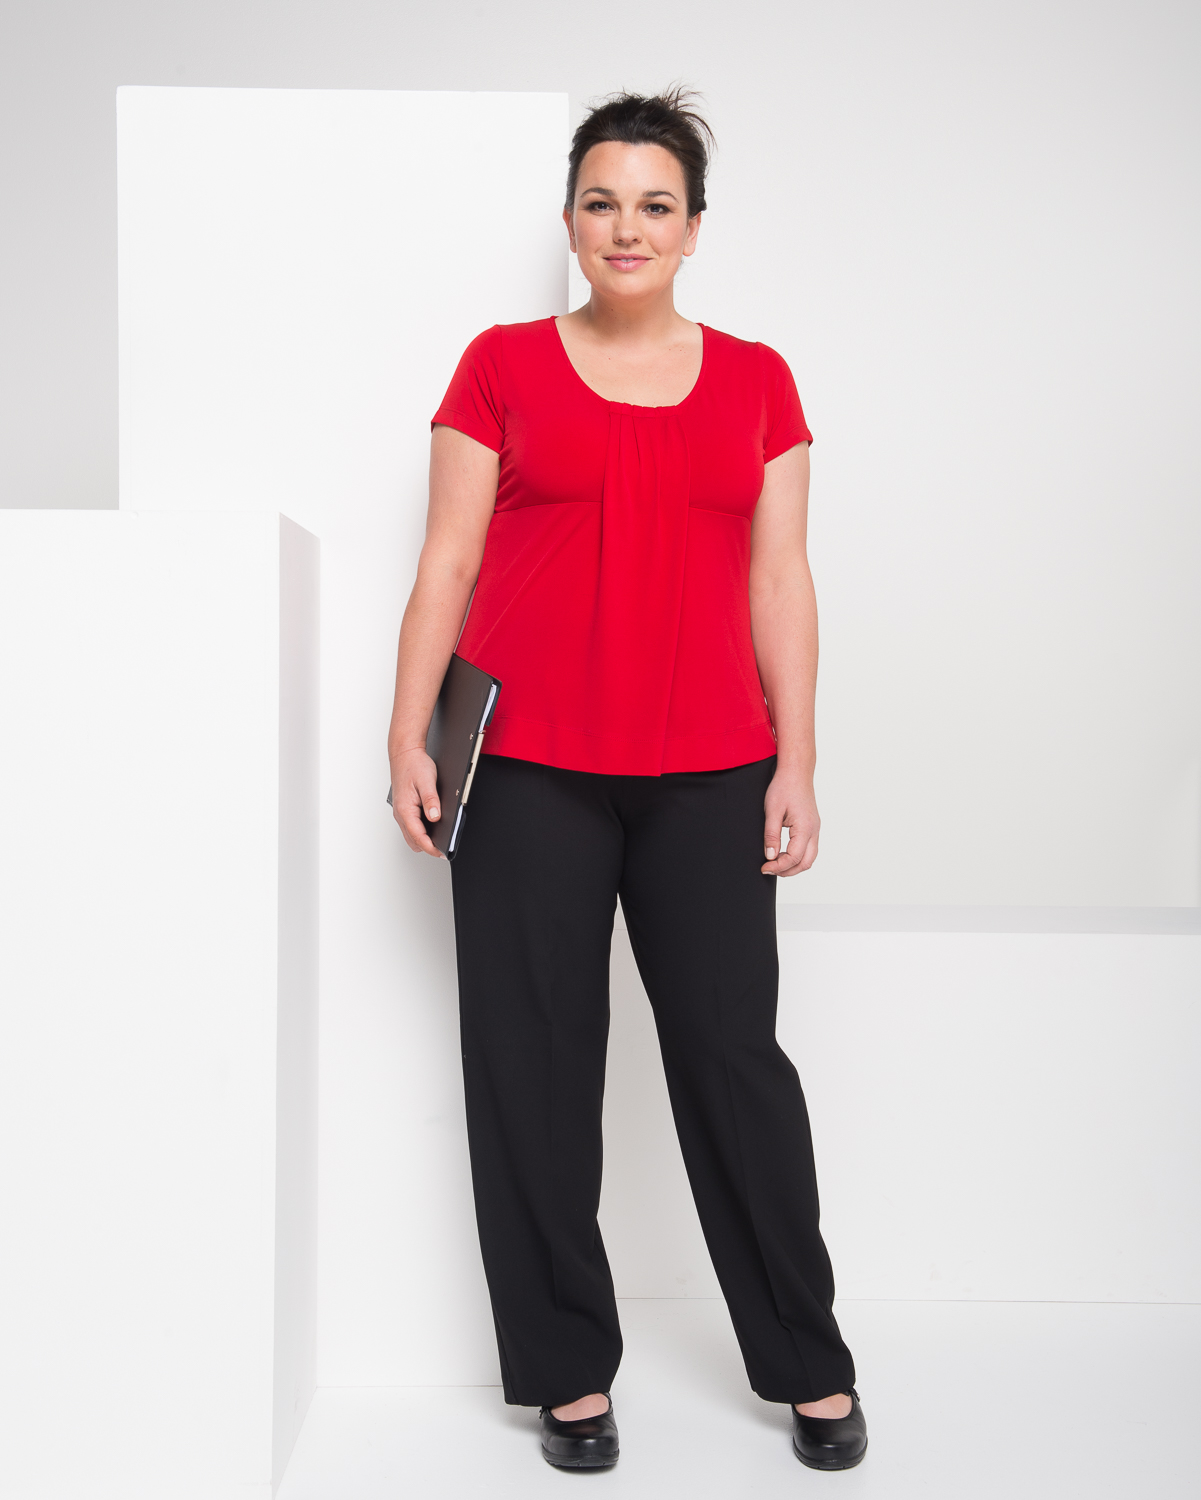 711-KN RED & 197K-ME BLK